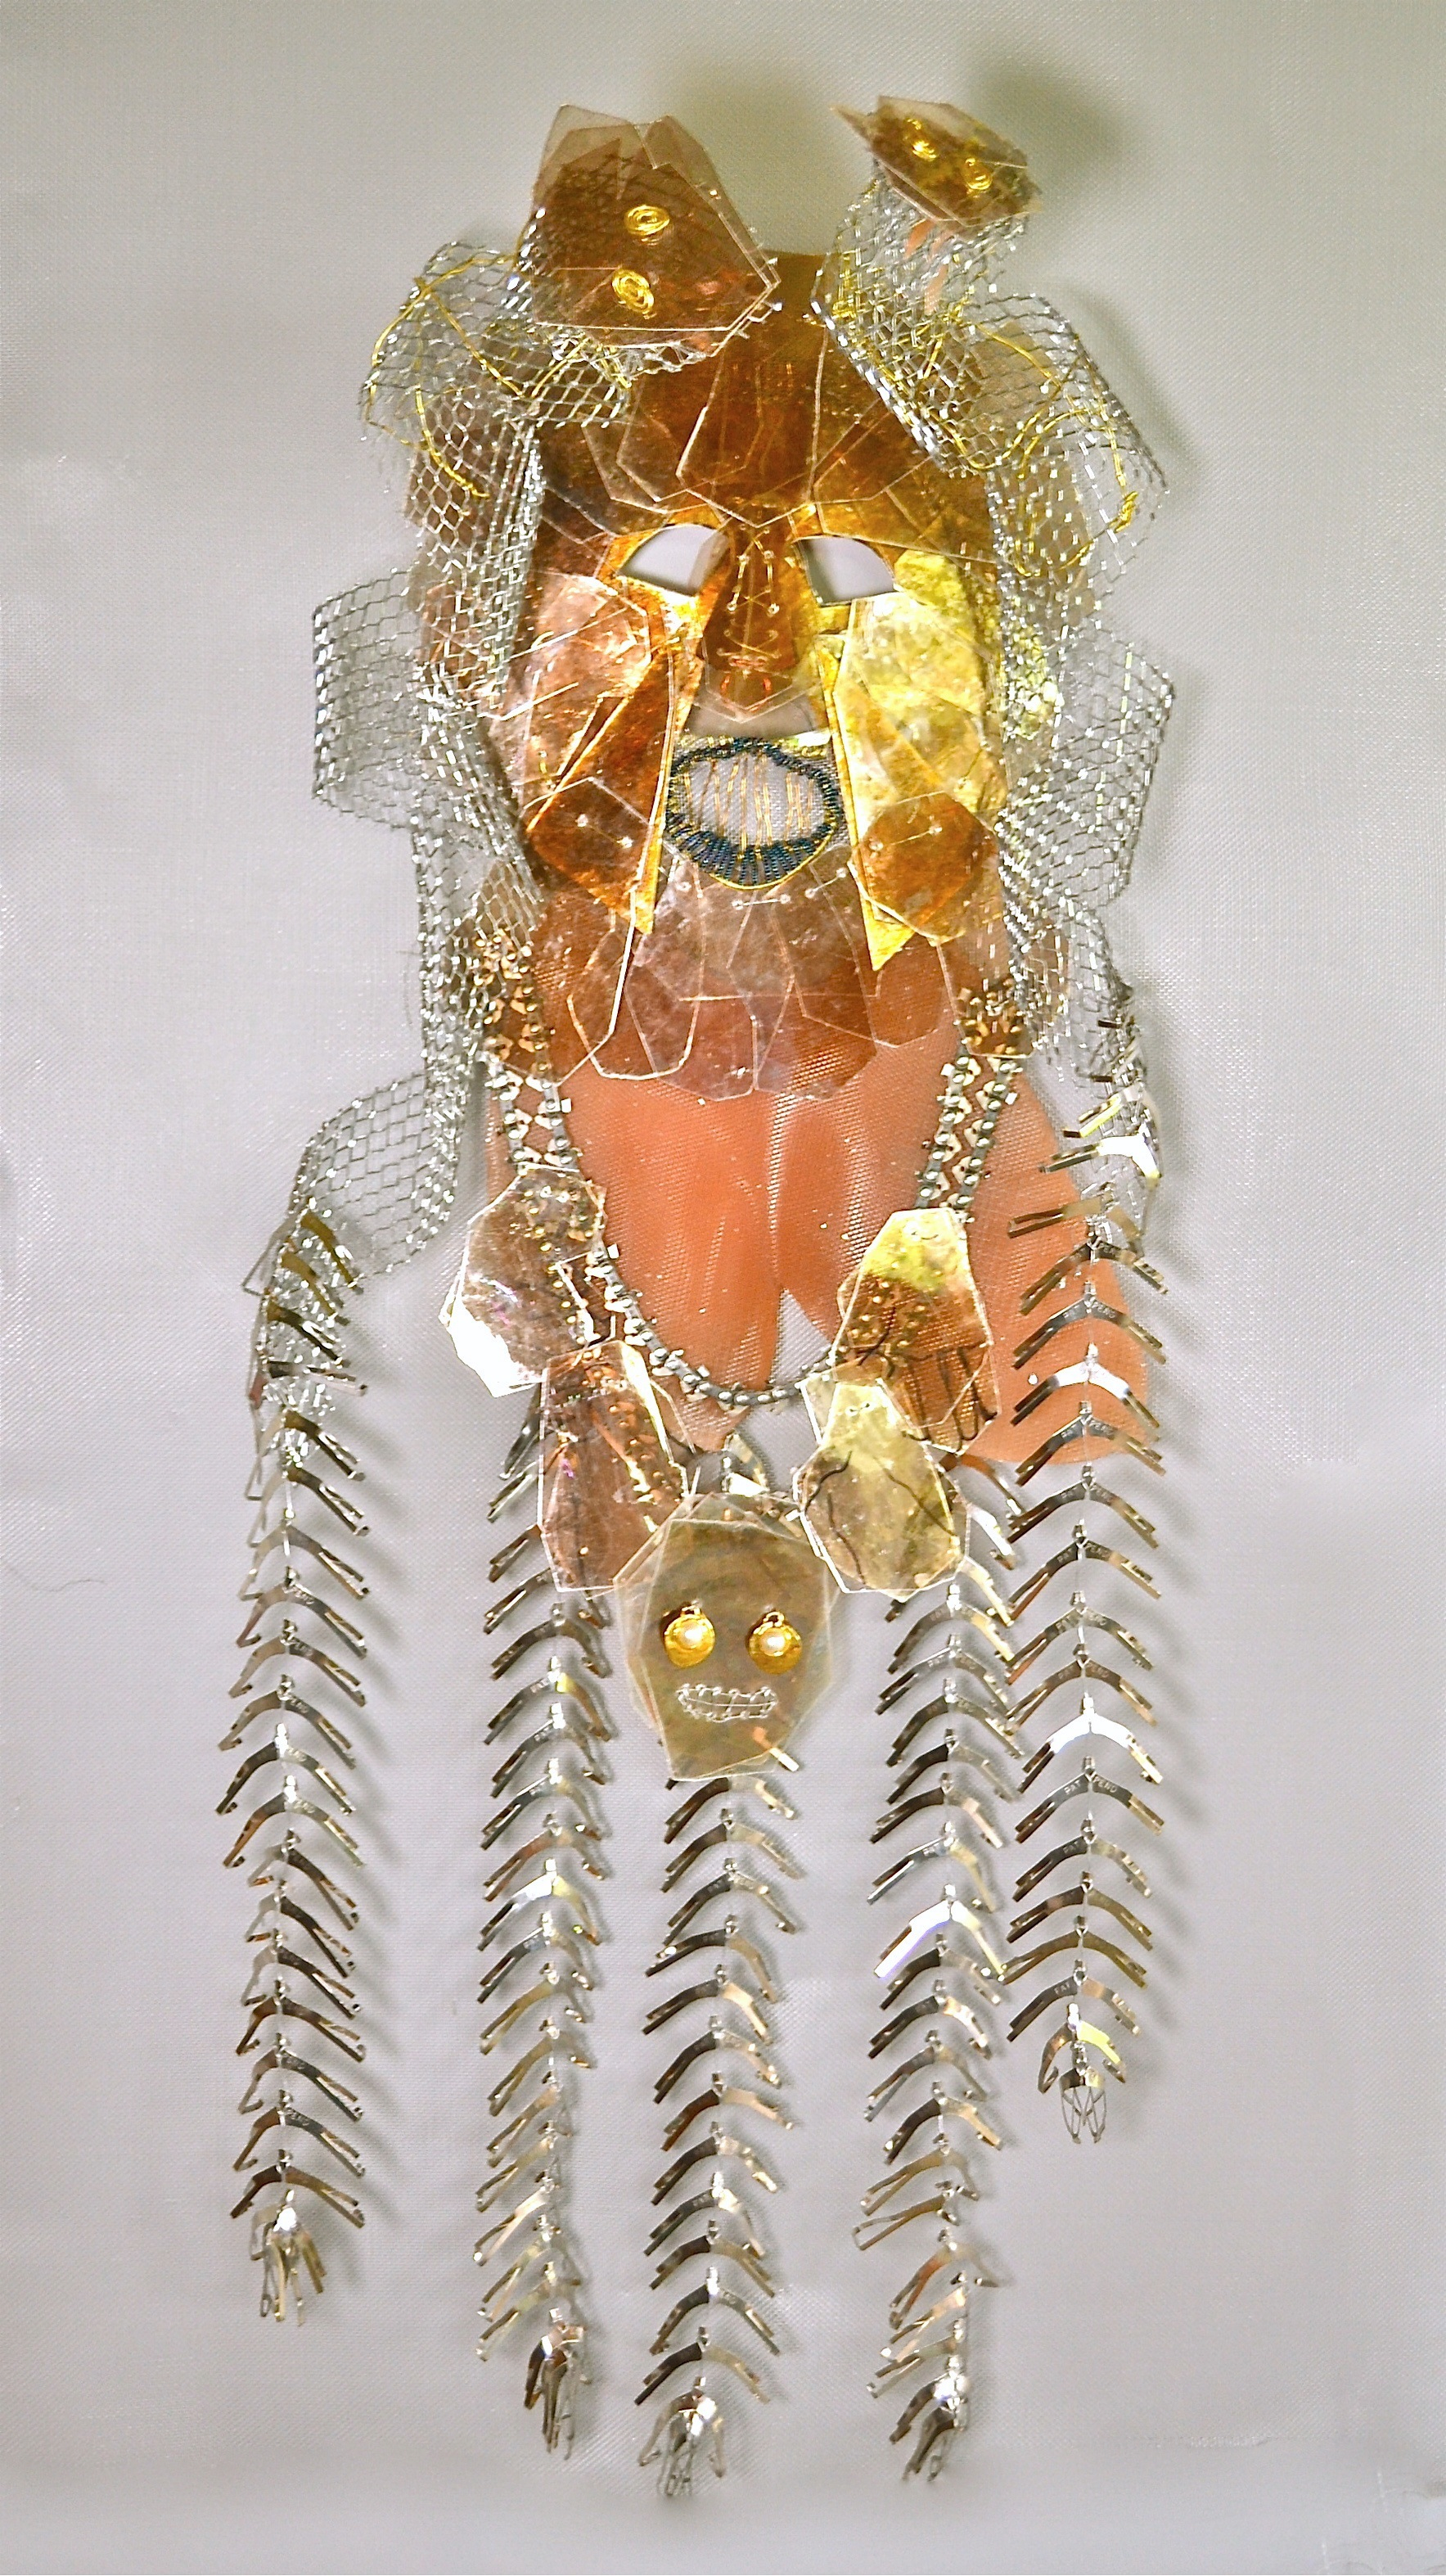 "Coatlique Mask wire, mica, screen, found objects, ink 48x30x8"" 2014"